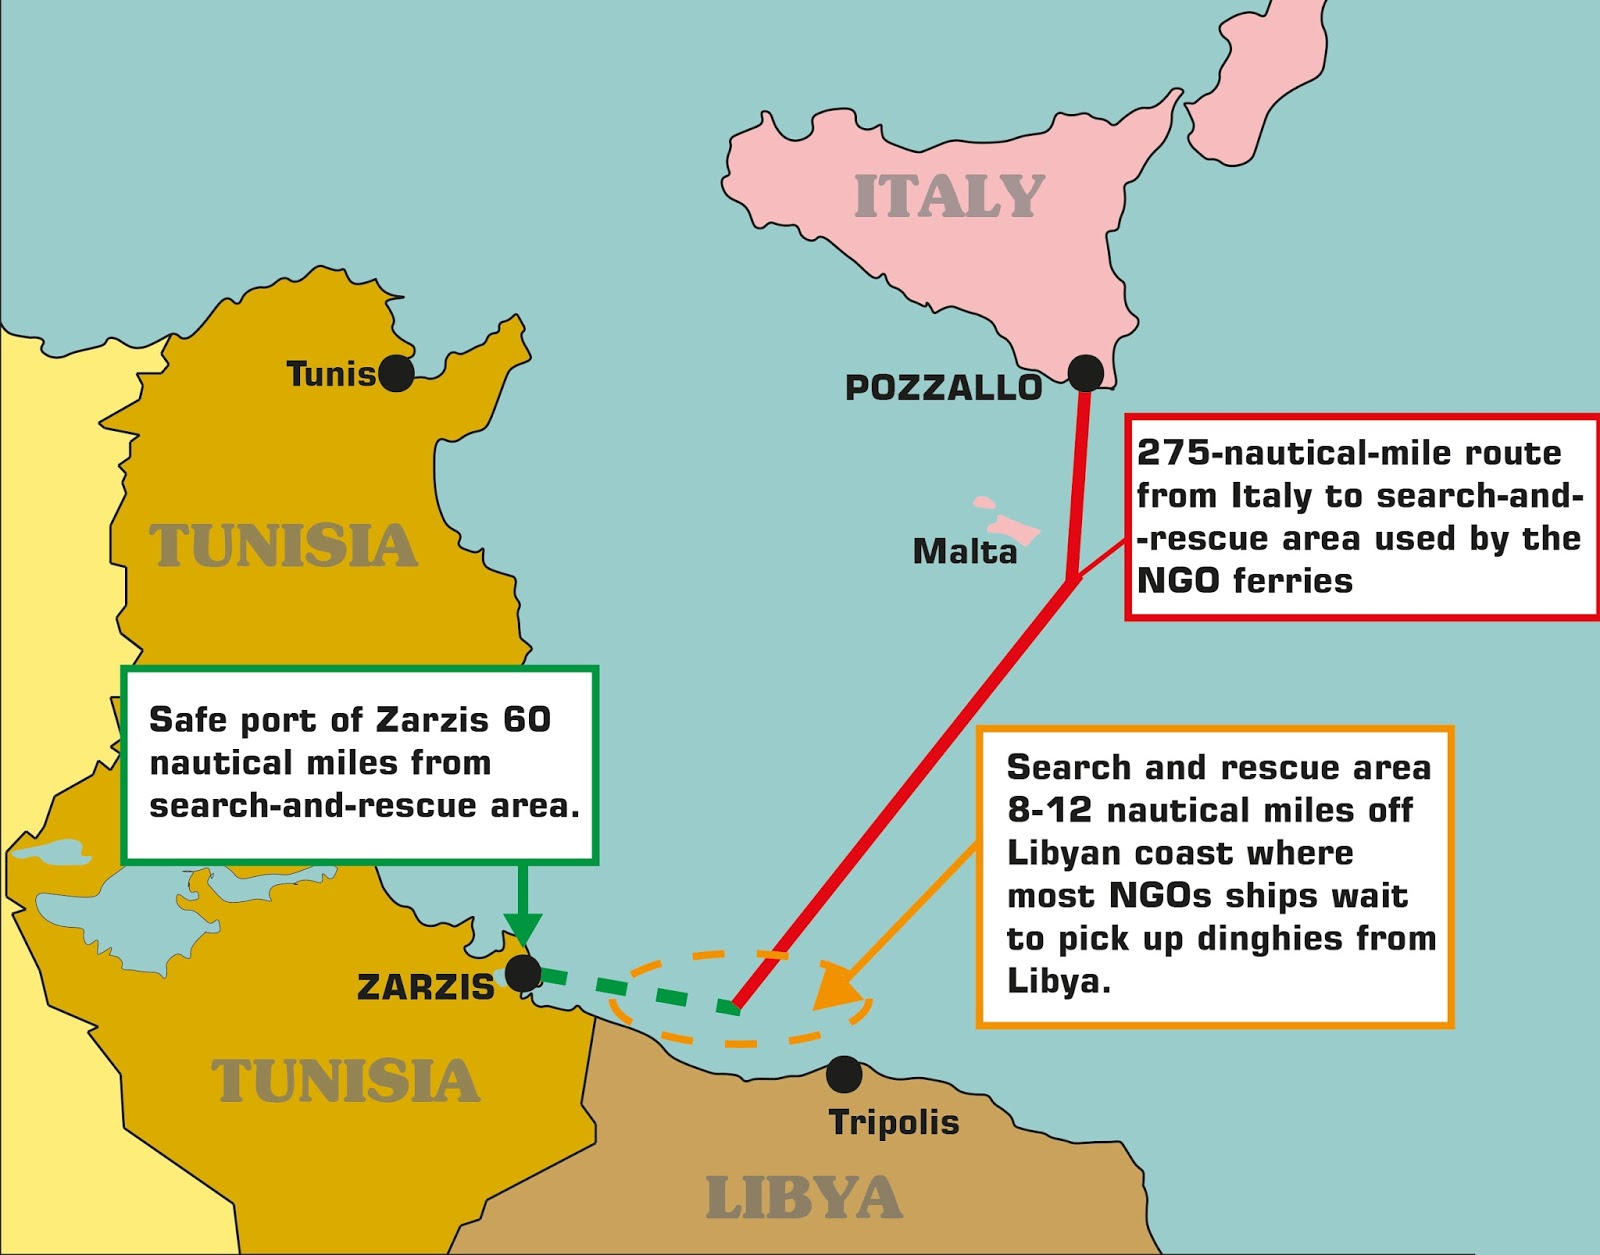 Hla oos blog italians do not want to stop muslim smuggling boats various ngos are illegally transporting muslim illegals from libyan waters straight to italy sciox Images